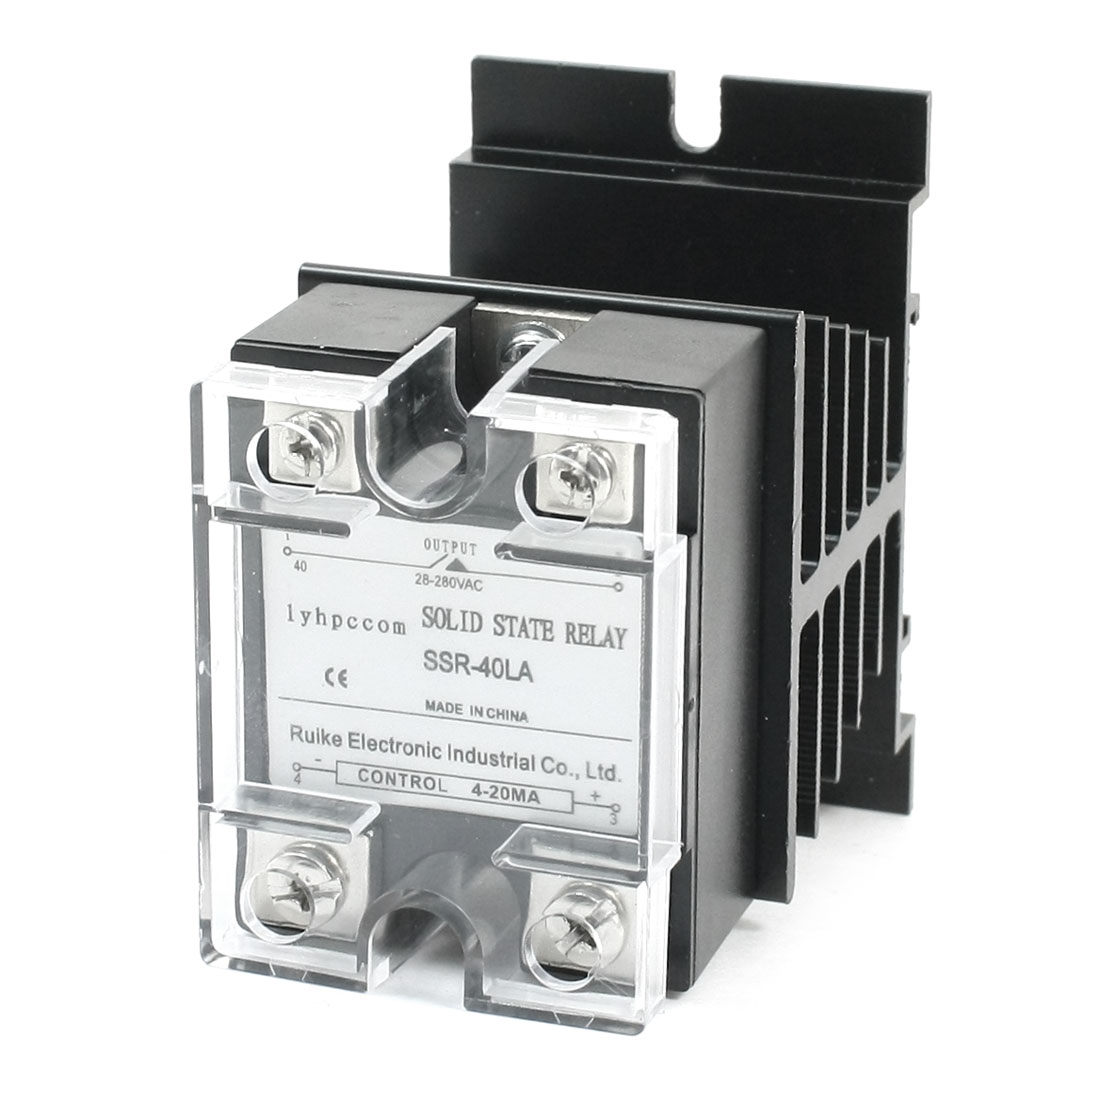 SSR-40LA 4-20mA to AC28-280V 40A 4 Screw Terminal Single Phase Clear Cover Black Aluminum Heatsink Solid State Relay